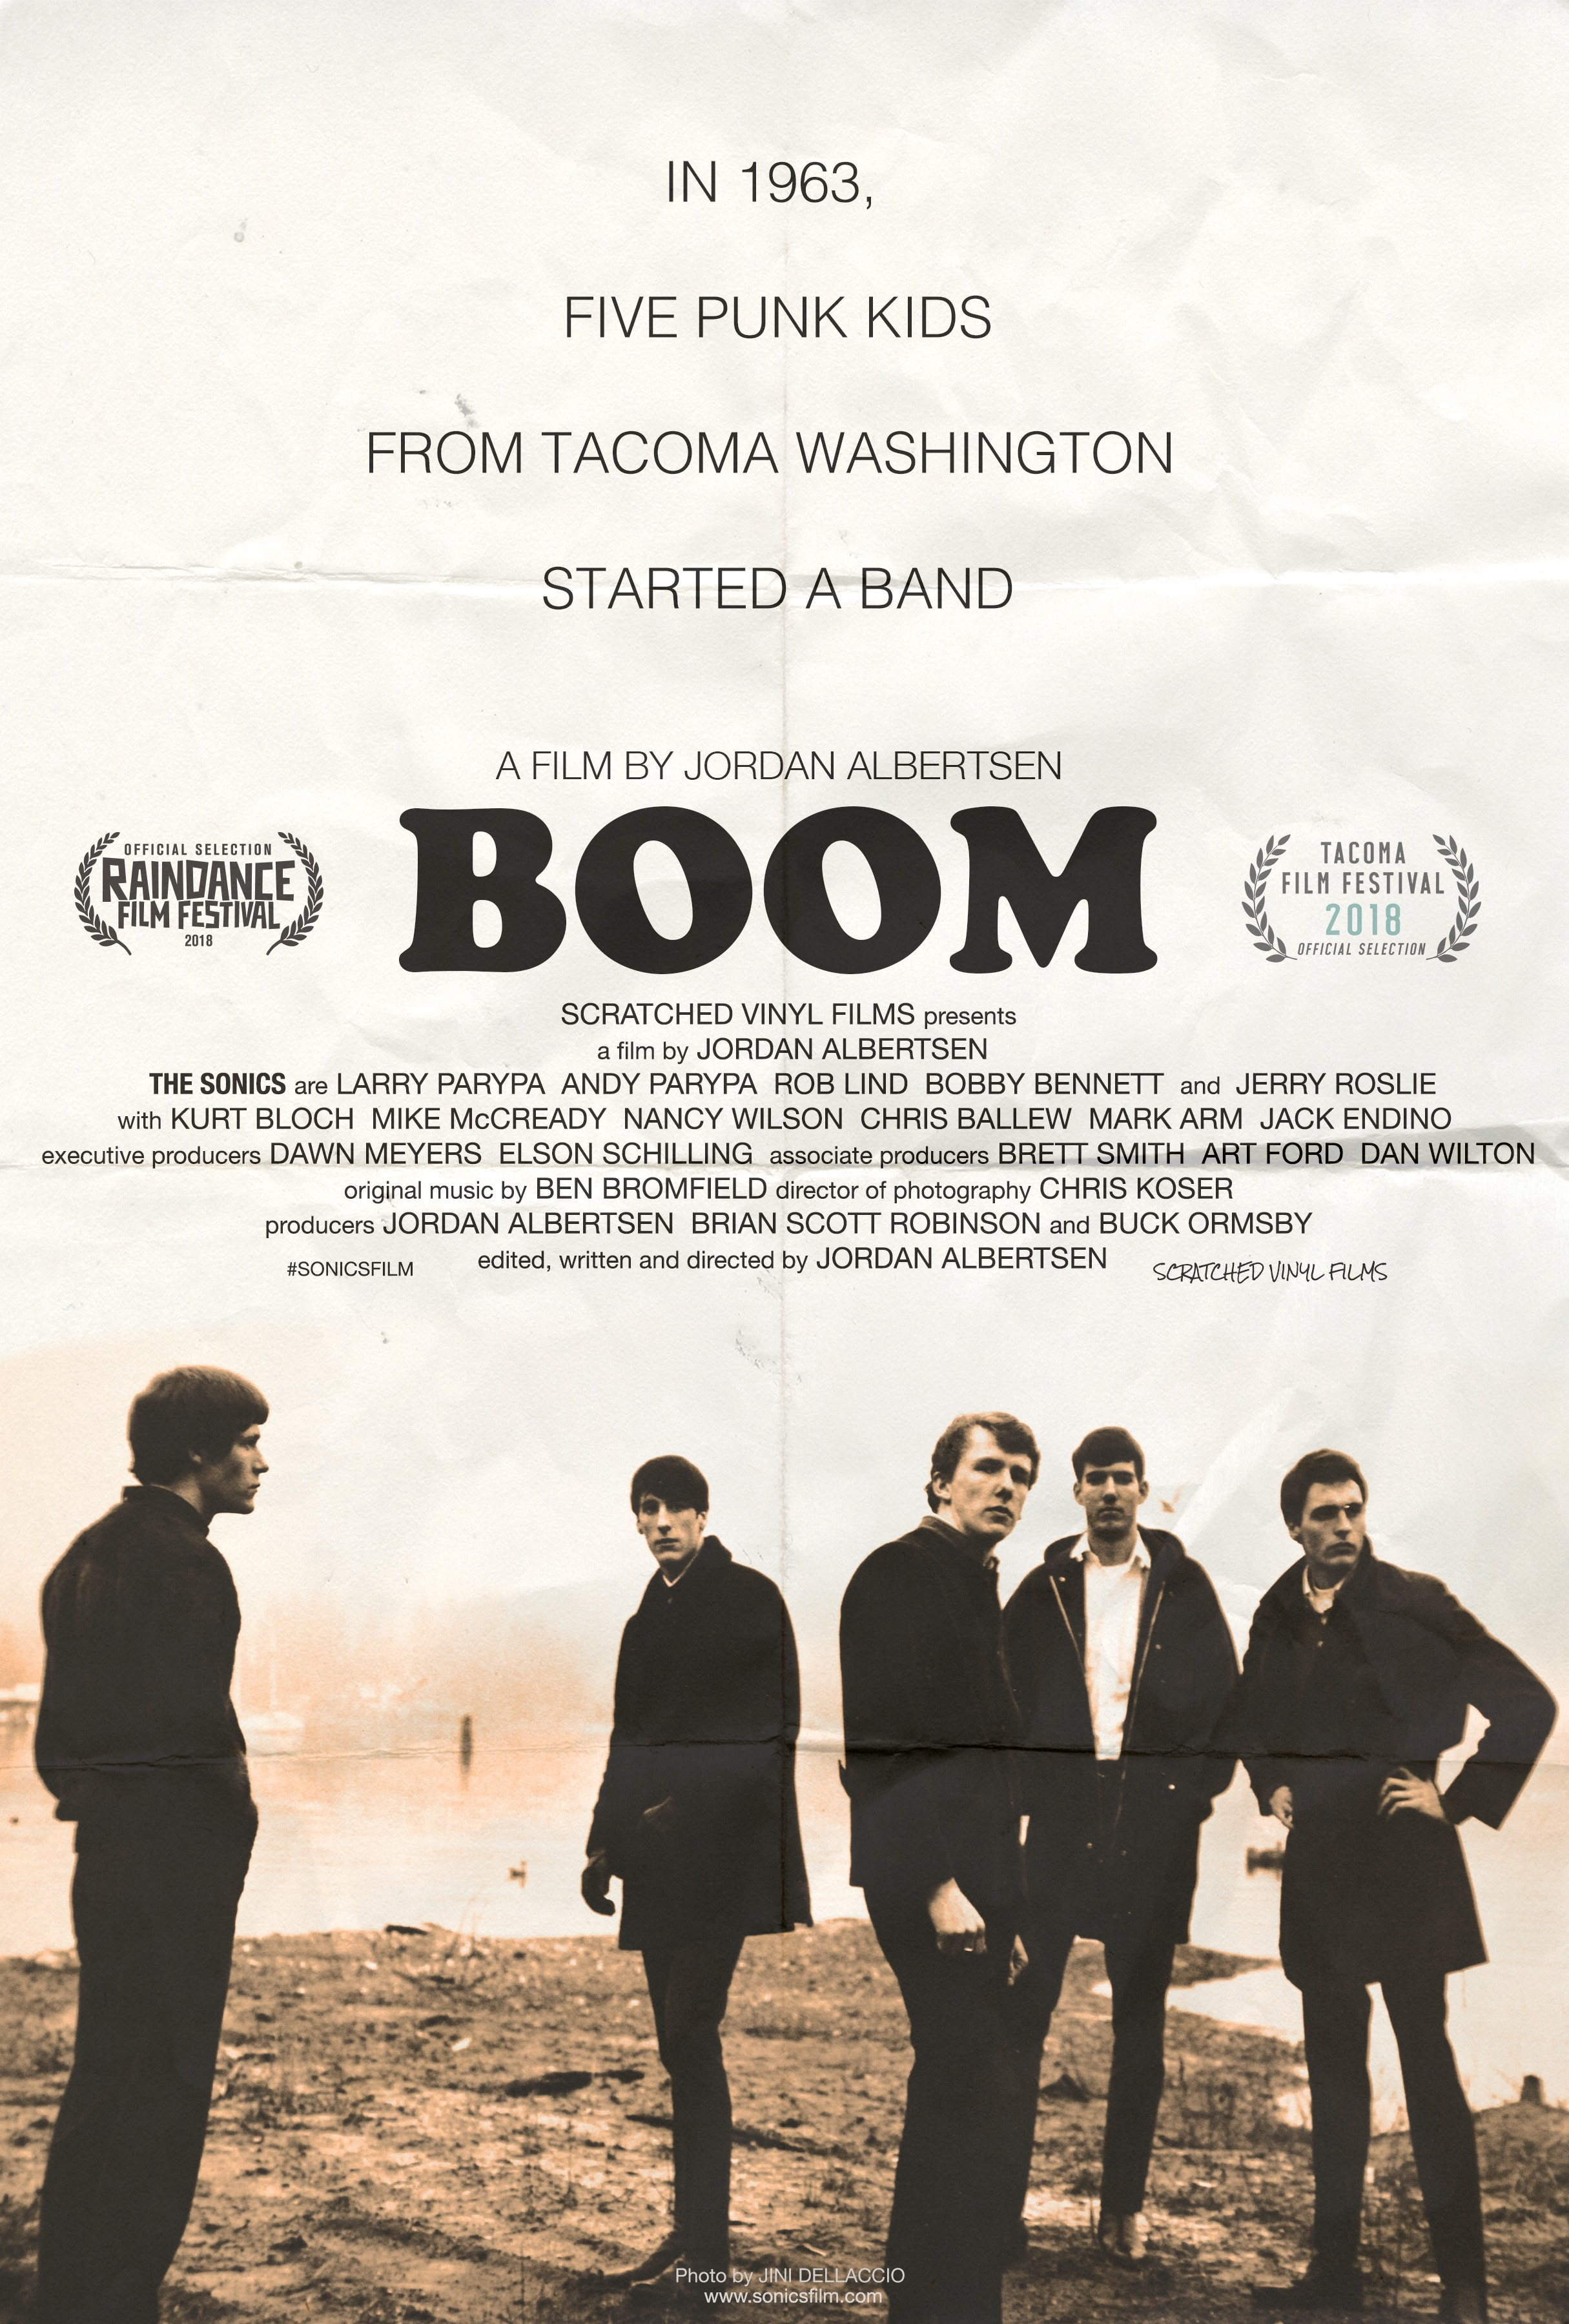 """Boom!"" - Feature Doc. - The untold story of one of rock 'n' roll's wildest and most influential bands, The Sonics. (prod.) Brian Robinson - (dir.) Jordan Alberston - Sound Design & Audio Post Production by Jack Goodman."